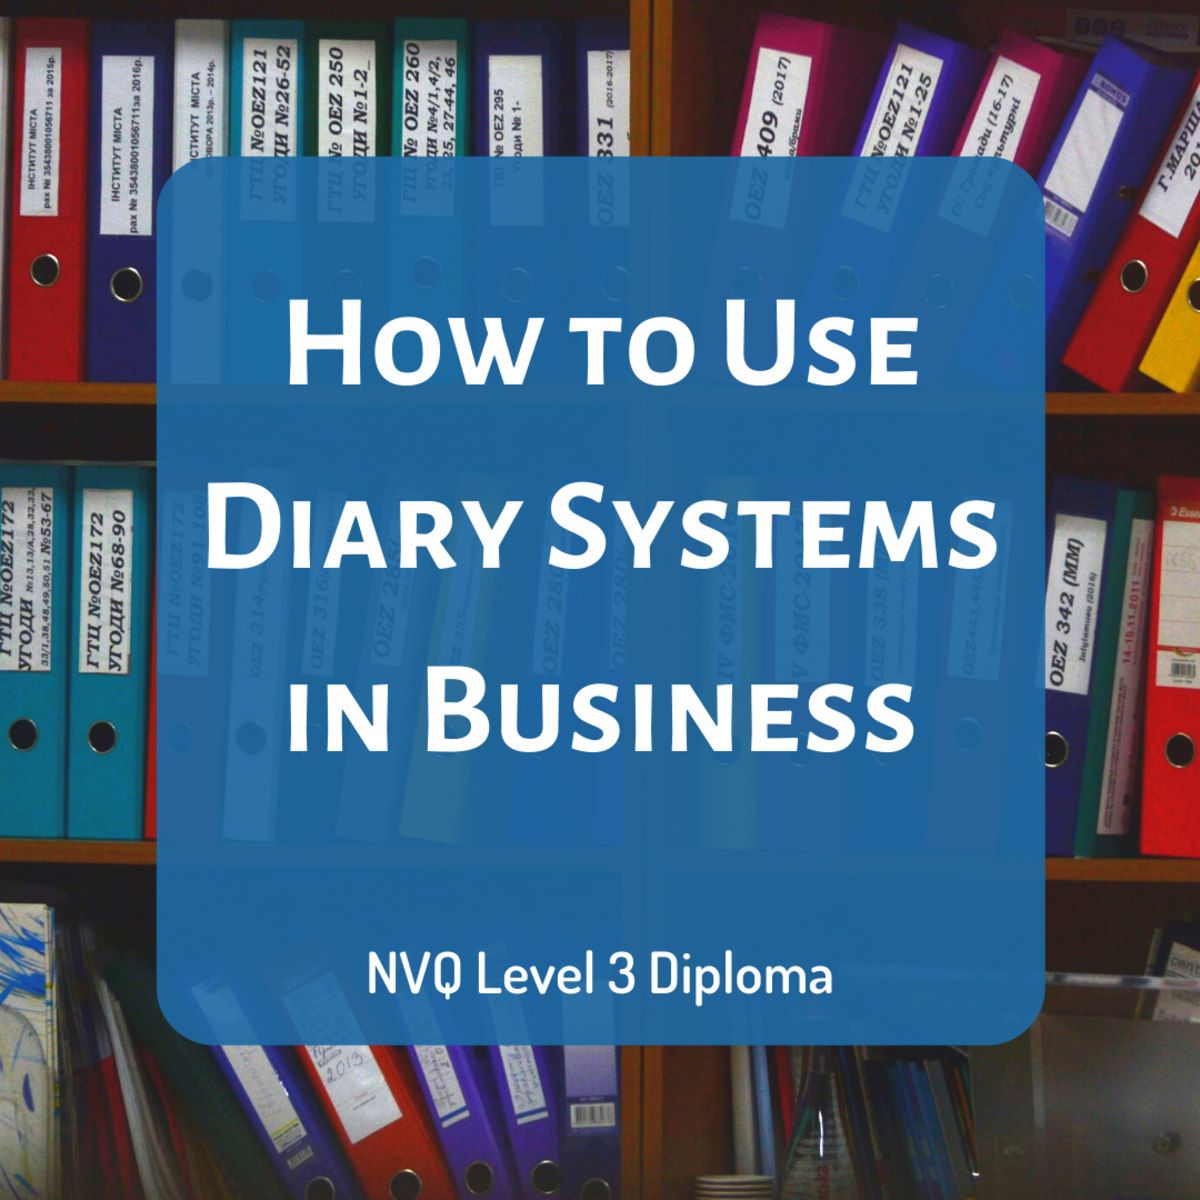 NVQ Level 3: Using Diary Systems (Purpose, Types and More)